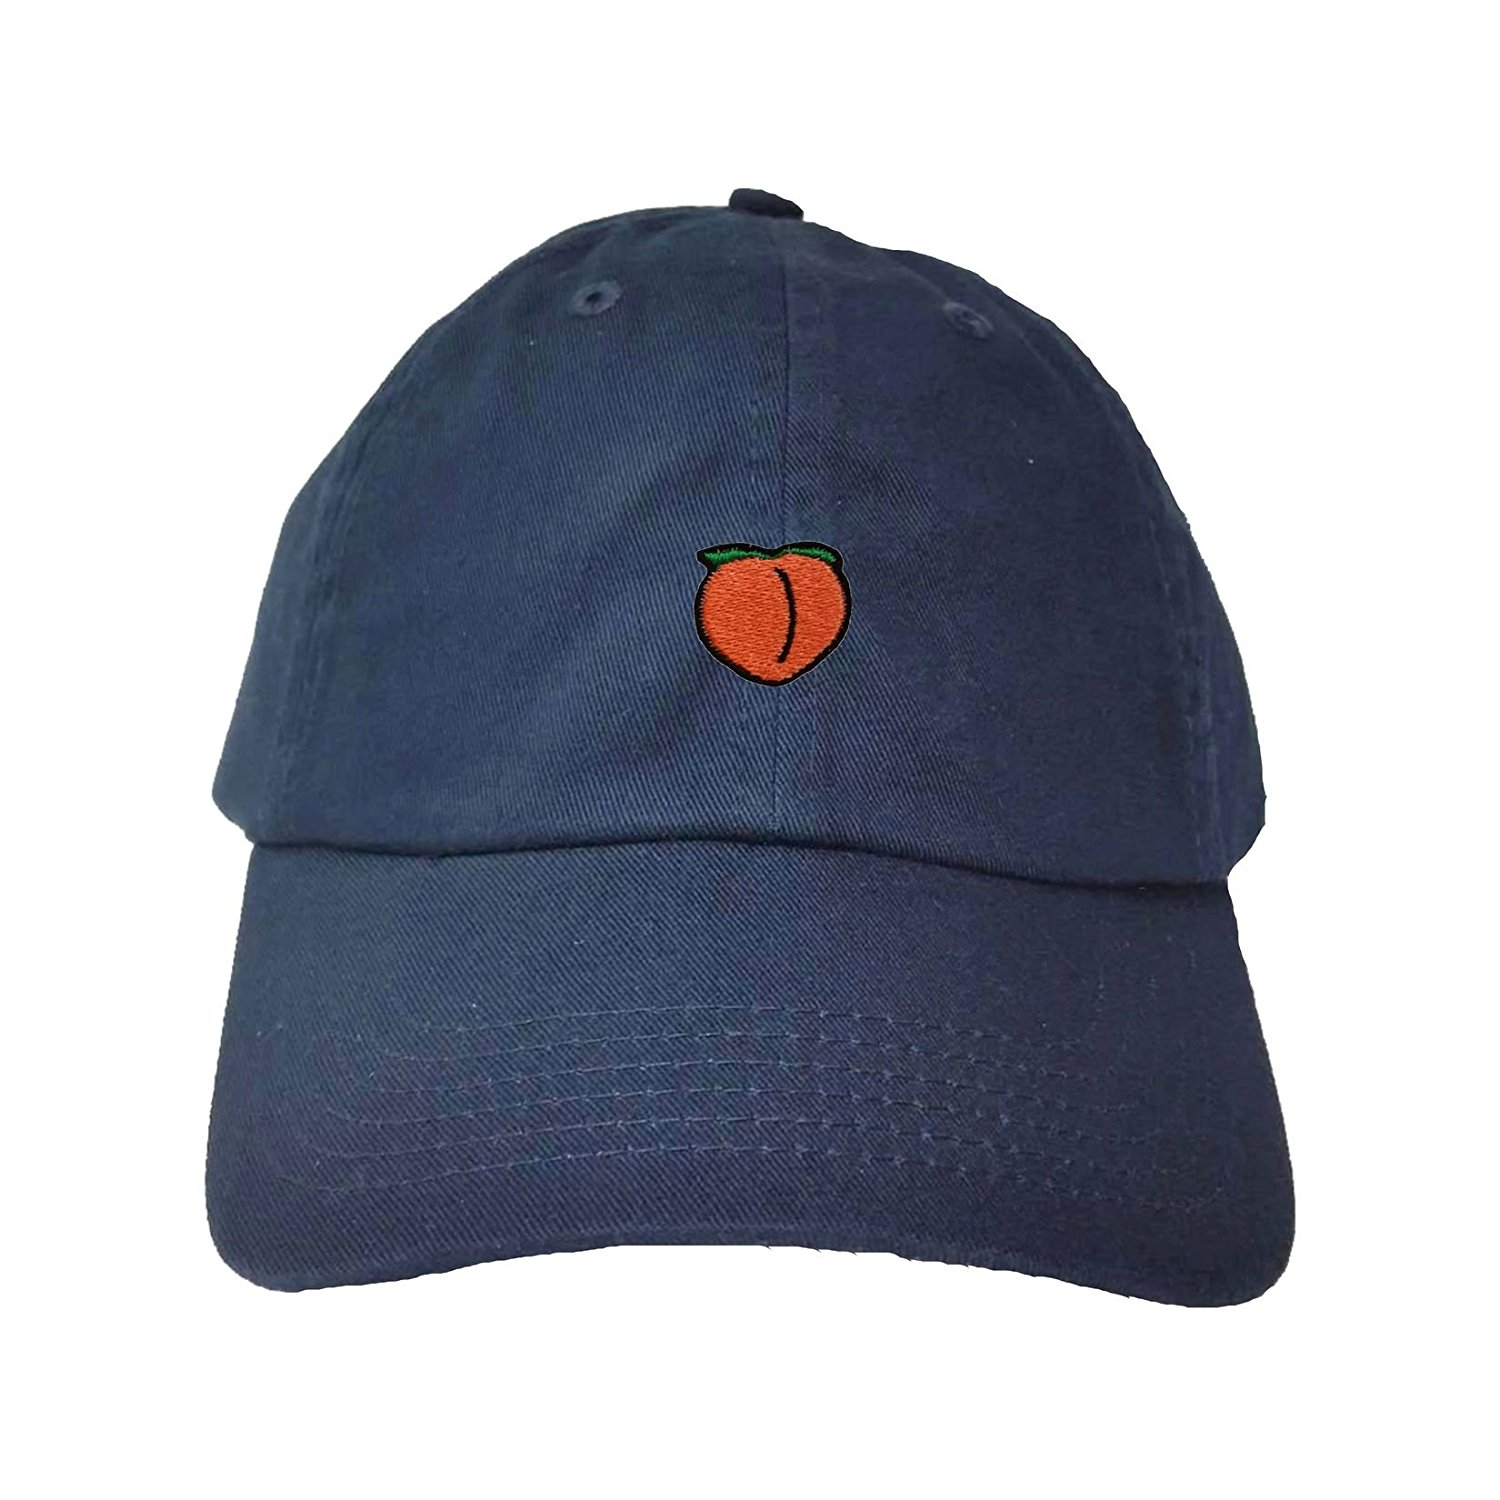 peachhat.jpeg